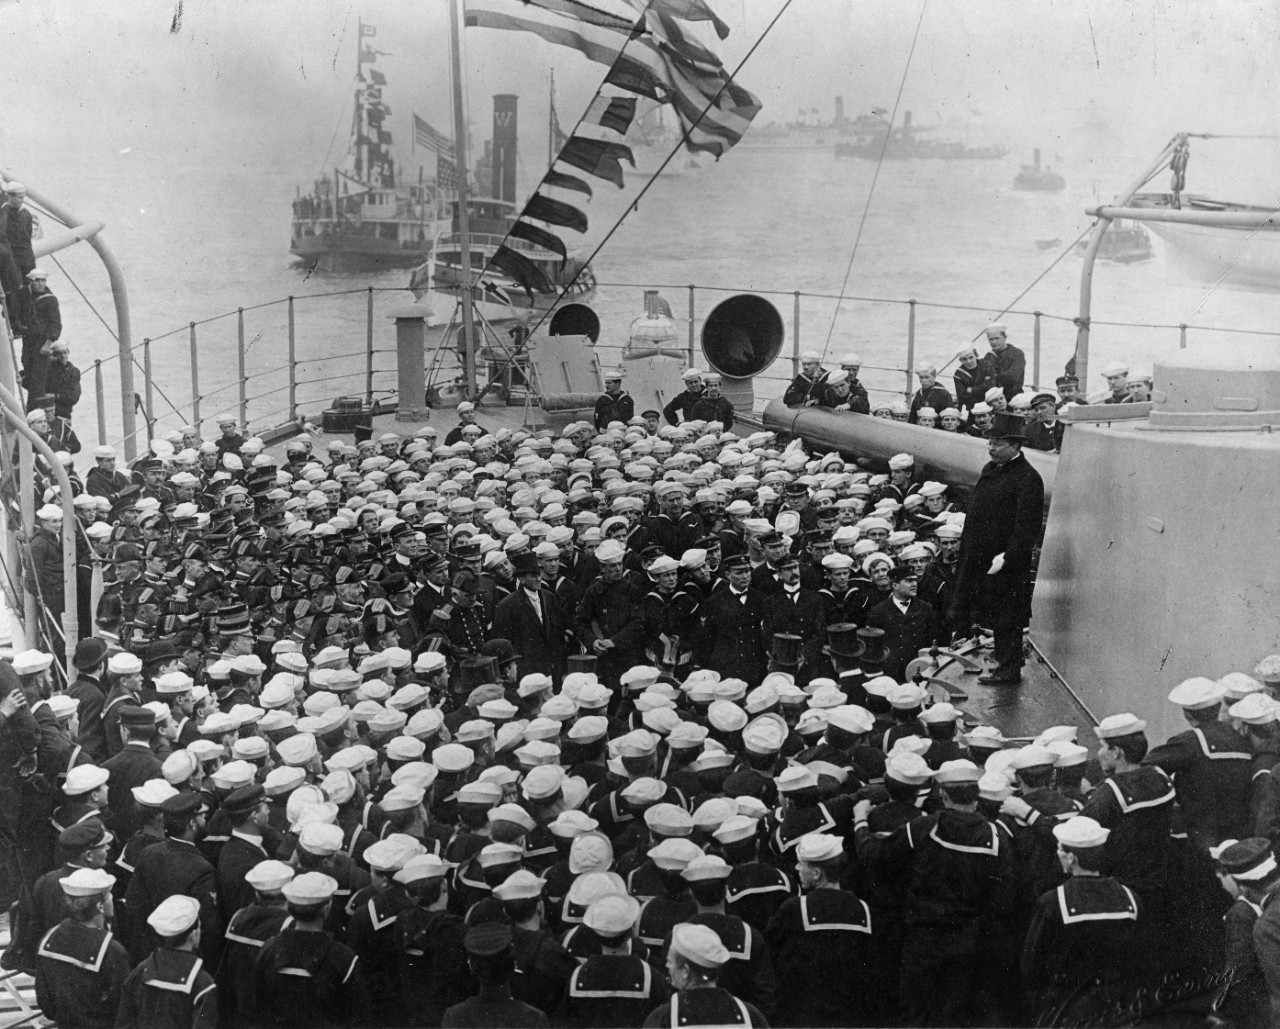 President Theodore Roosevelt standing on a battleship turret with a crowd of seamen in front of him.